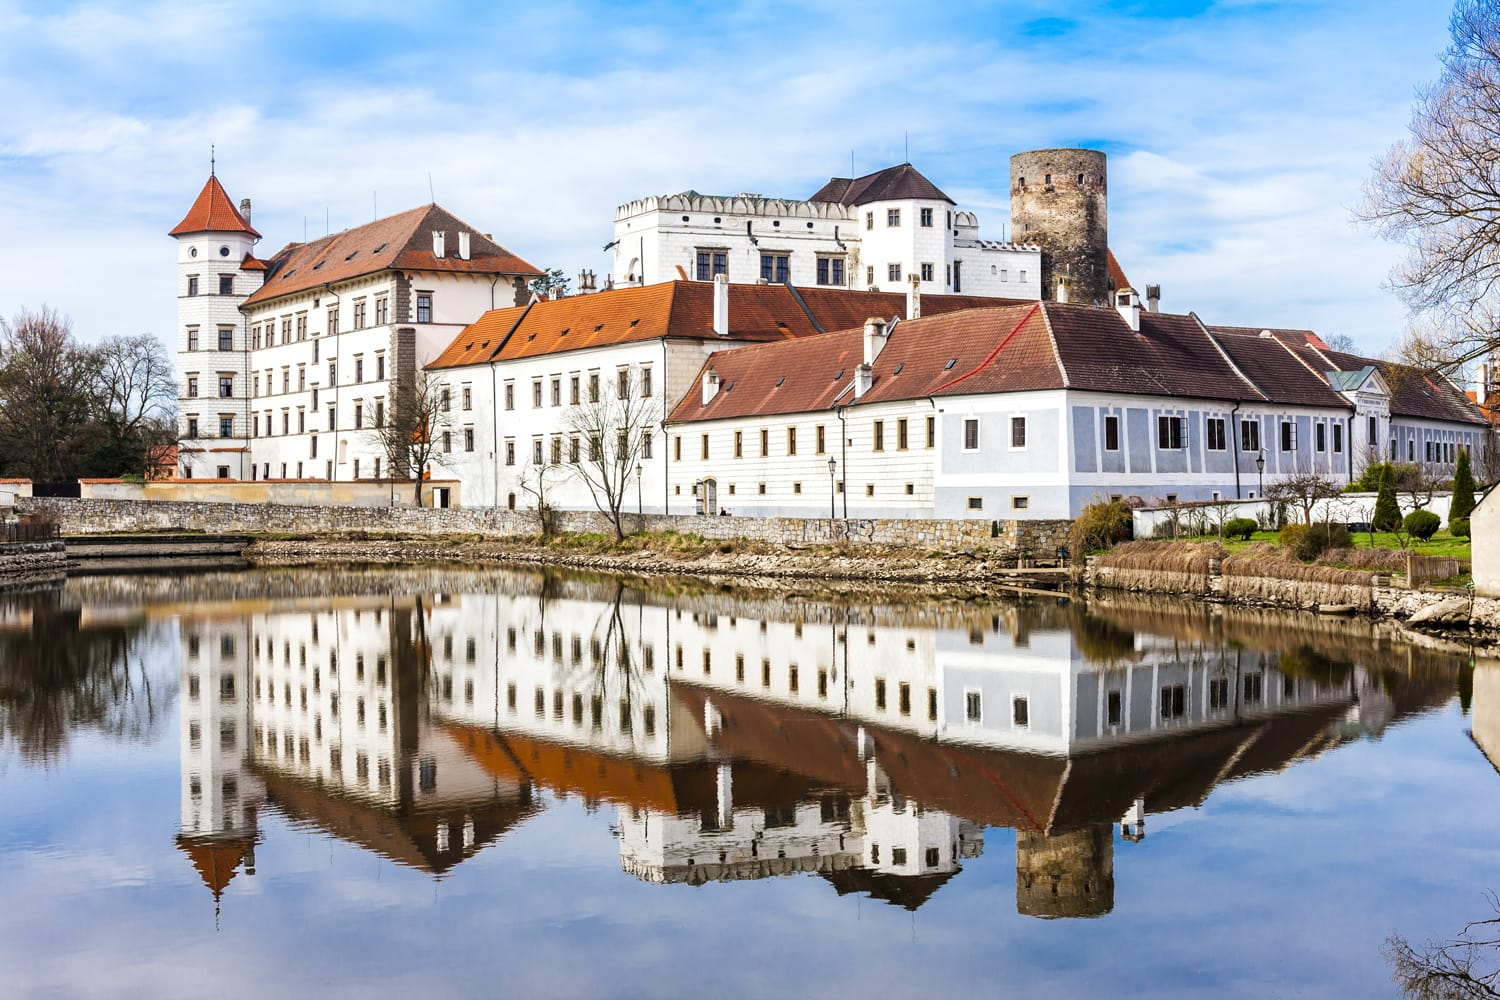 castle and palace of Jindrichuv Hradec, Czech Republic